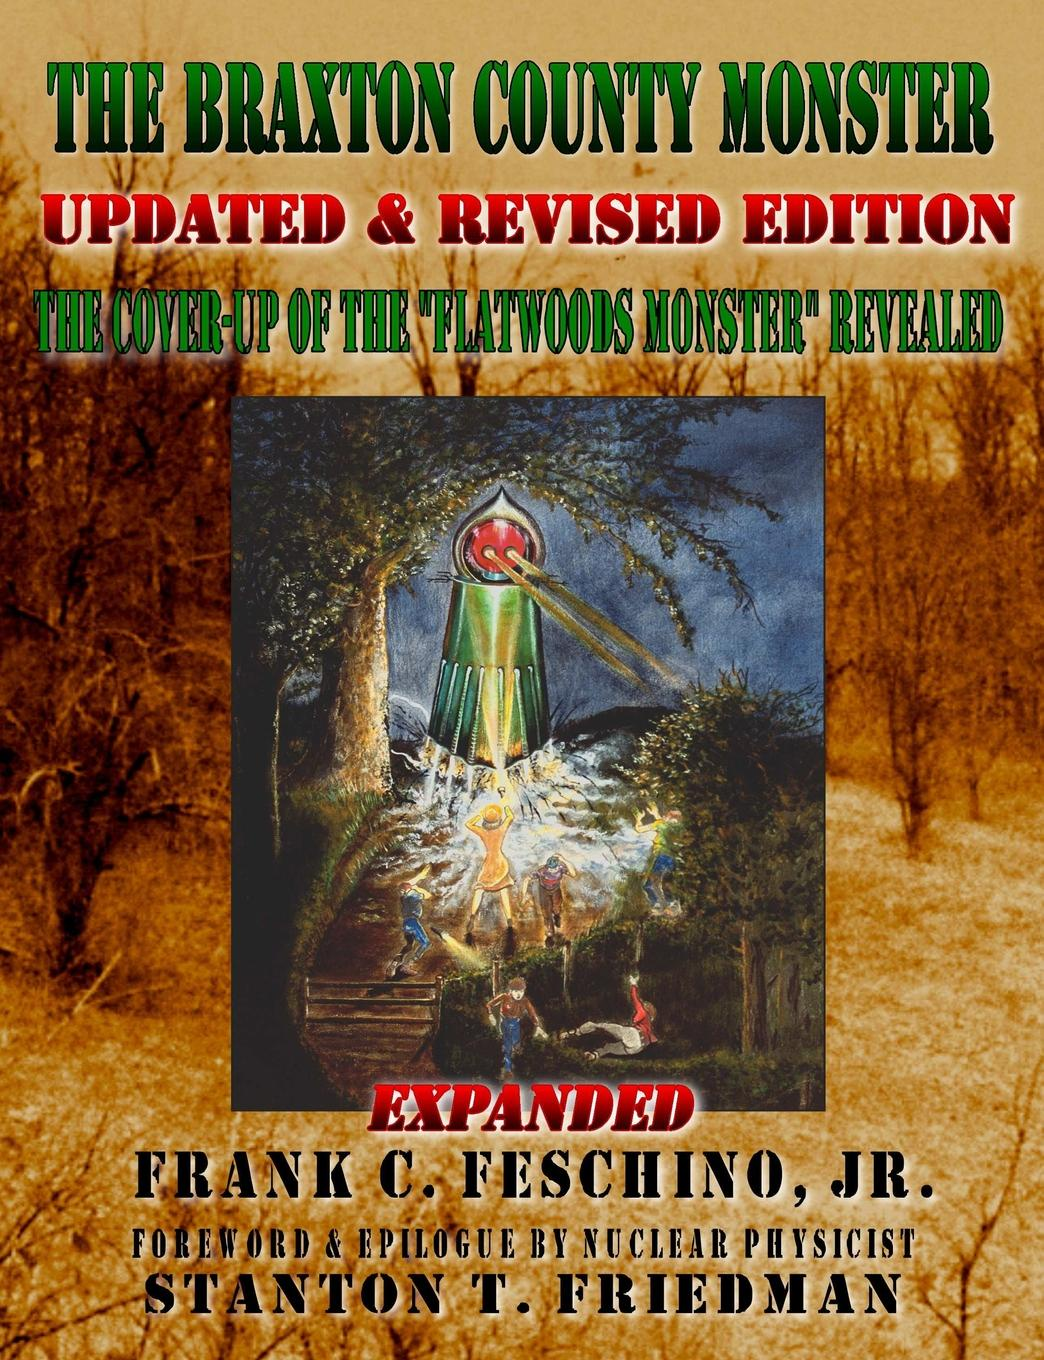 Фото - Frank Jr. Feschino The Braxton County Monster Updated . Revised Edition the Cover-Up of the Flatwoods Monster Revealed Expanded batman night of the monster men rebirth